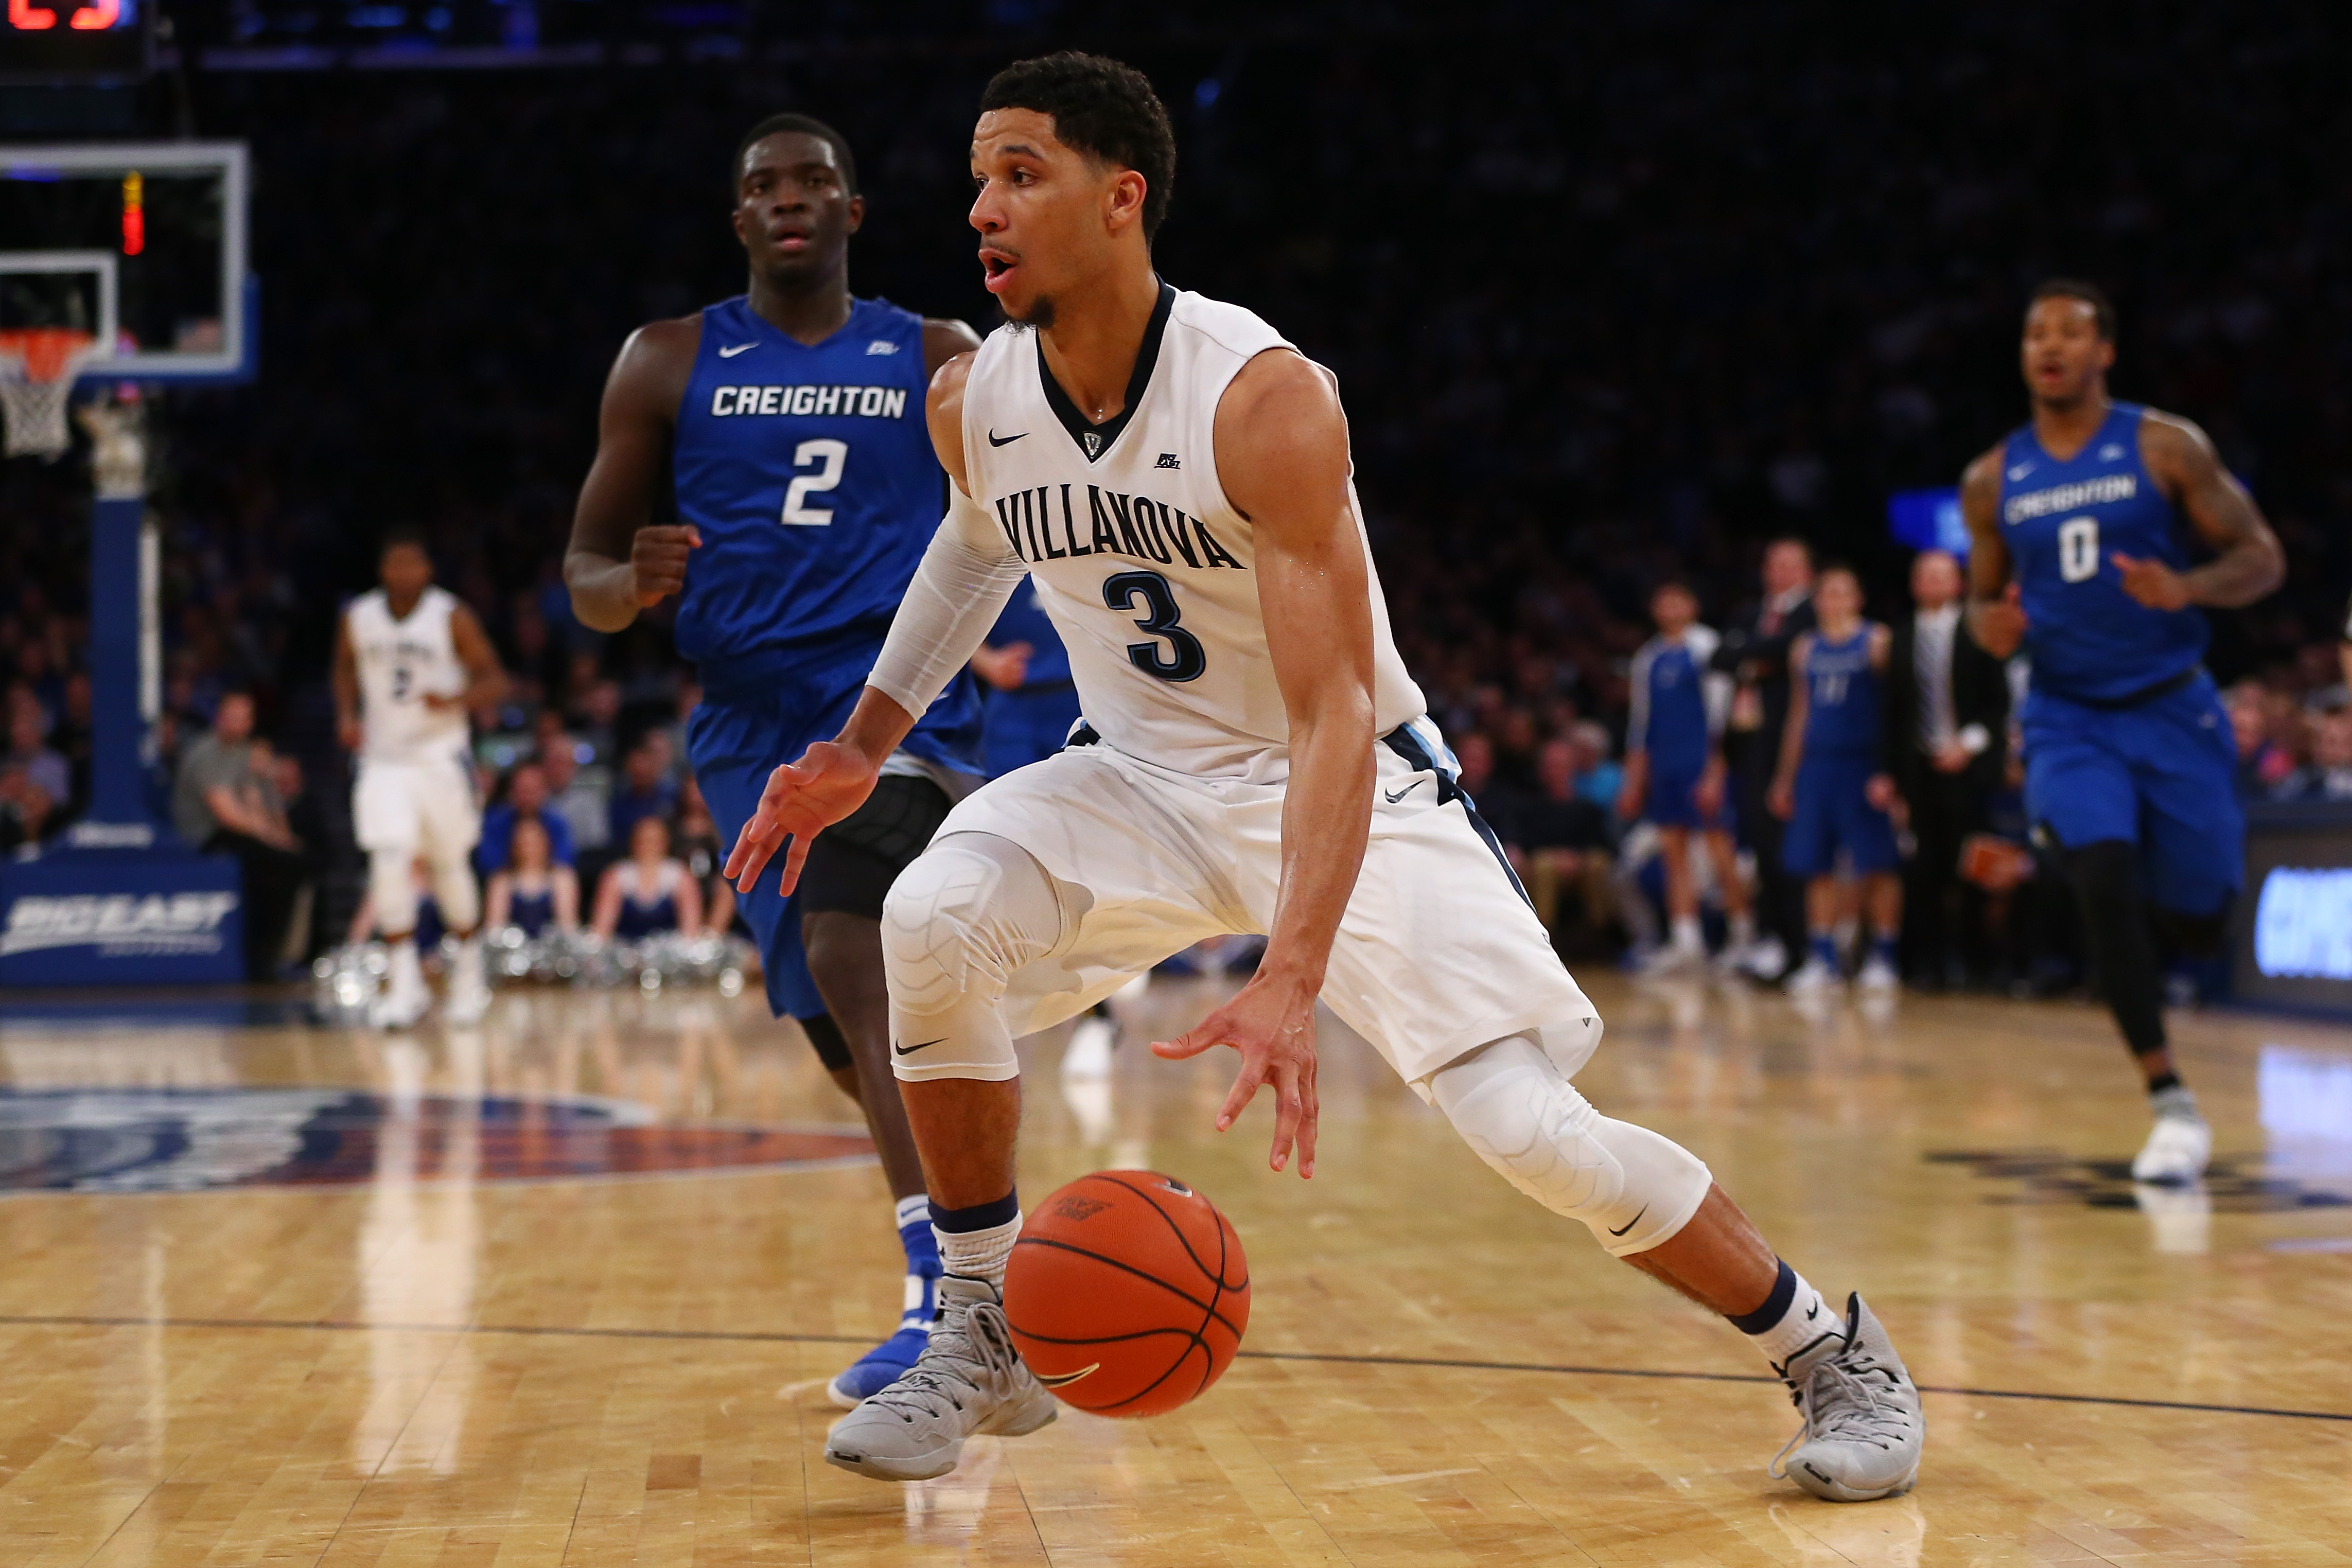 Villanova's Josh Hart, the Big East player of the year, is a finalist for the Wooden Award presented to the nation's top player.  (Getty Images)